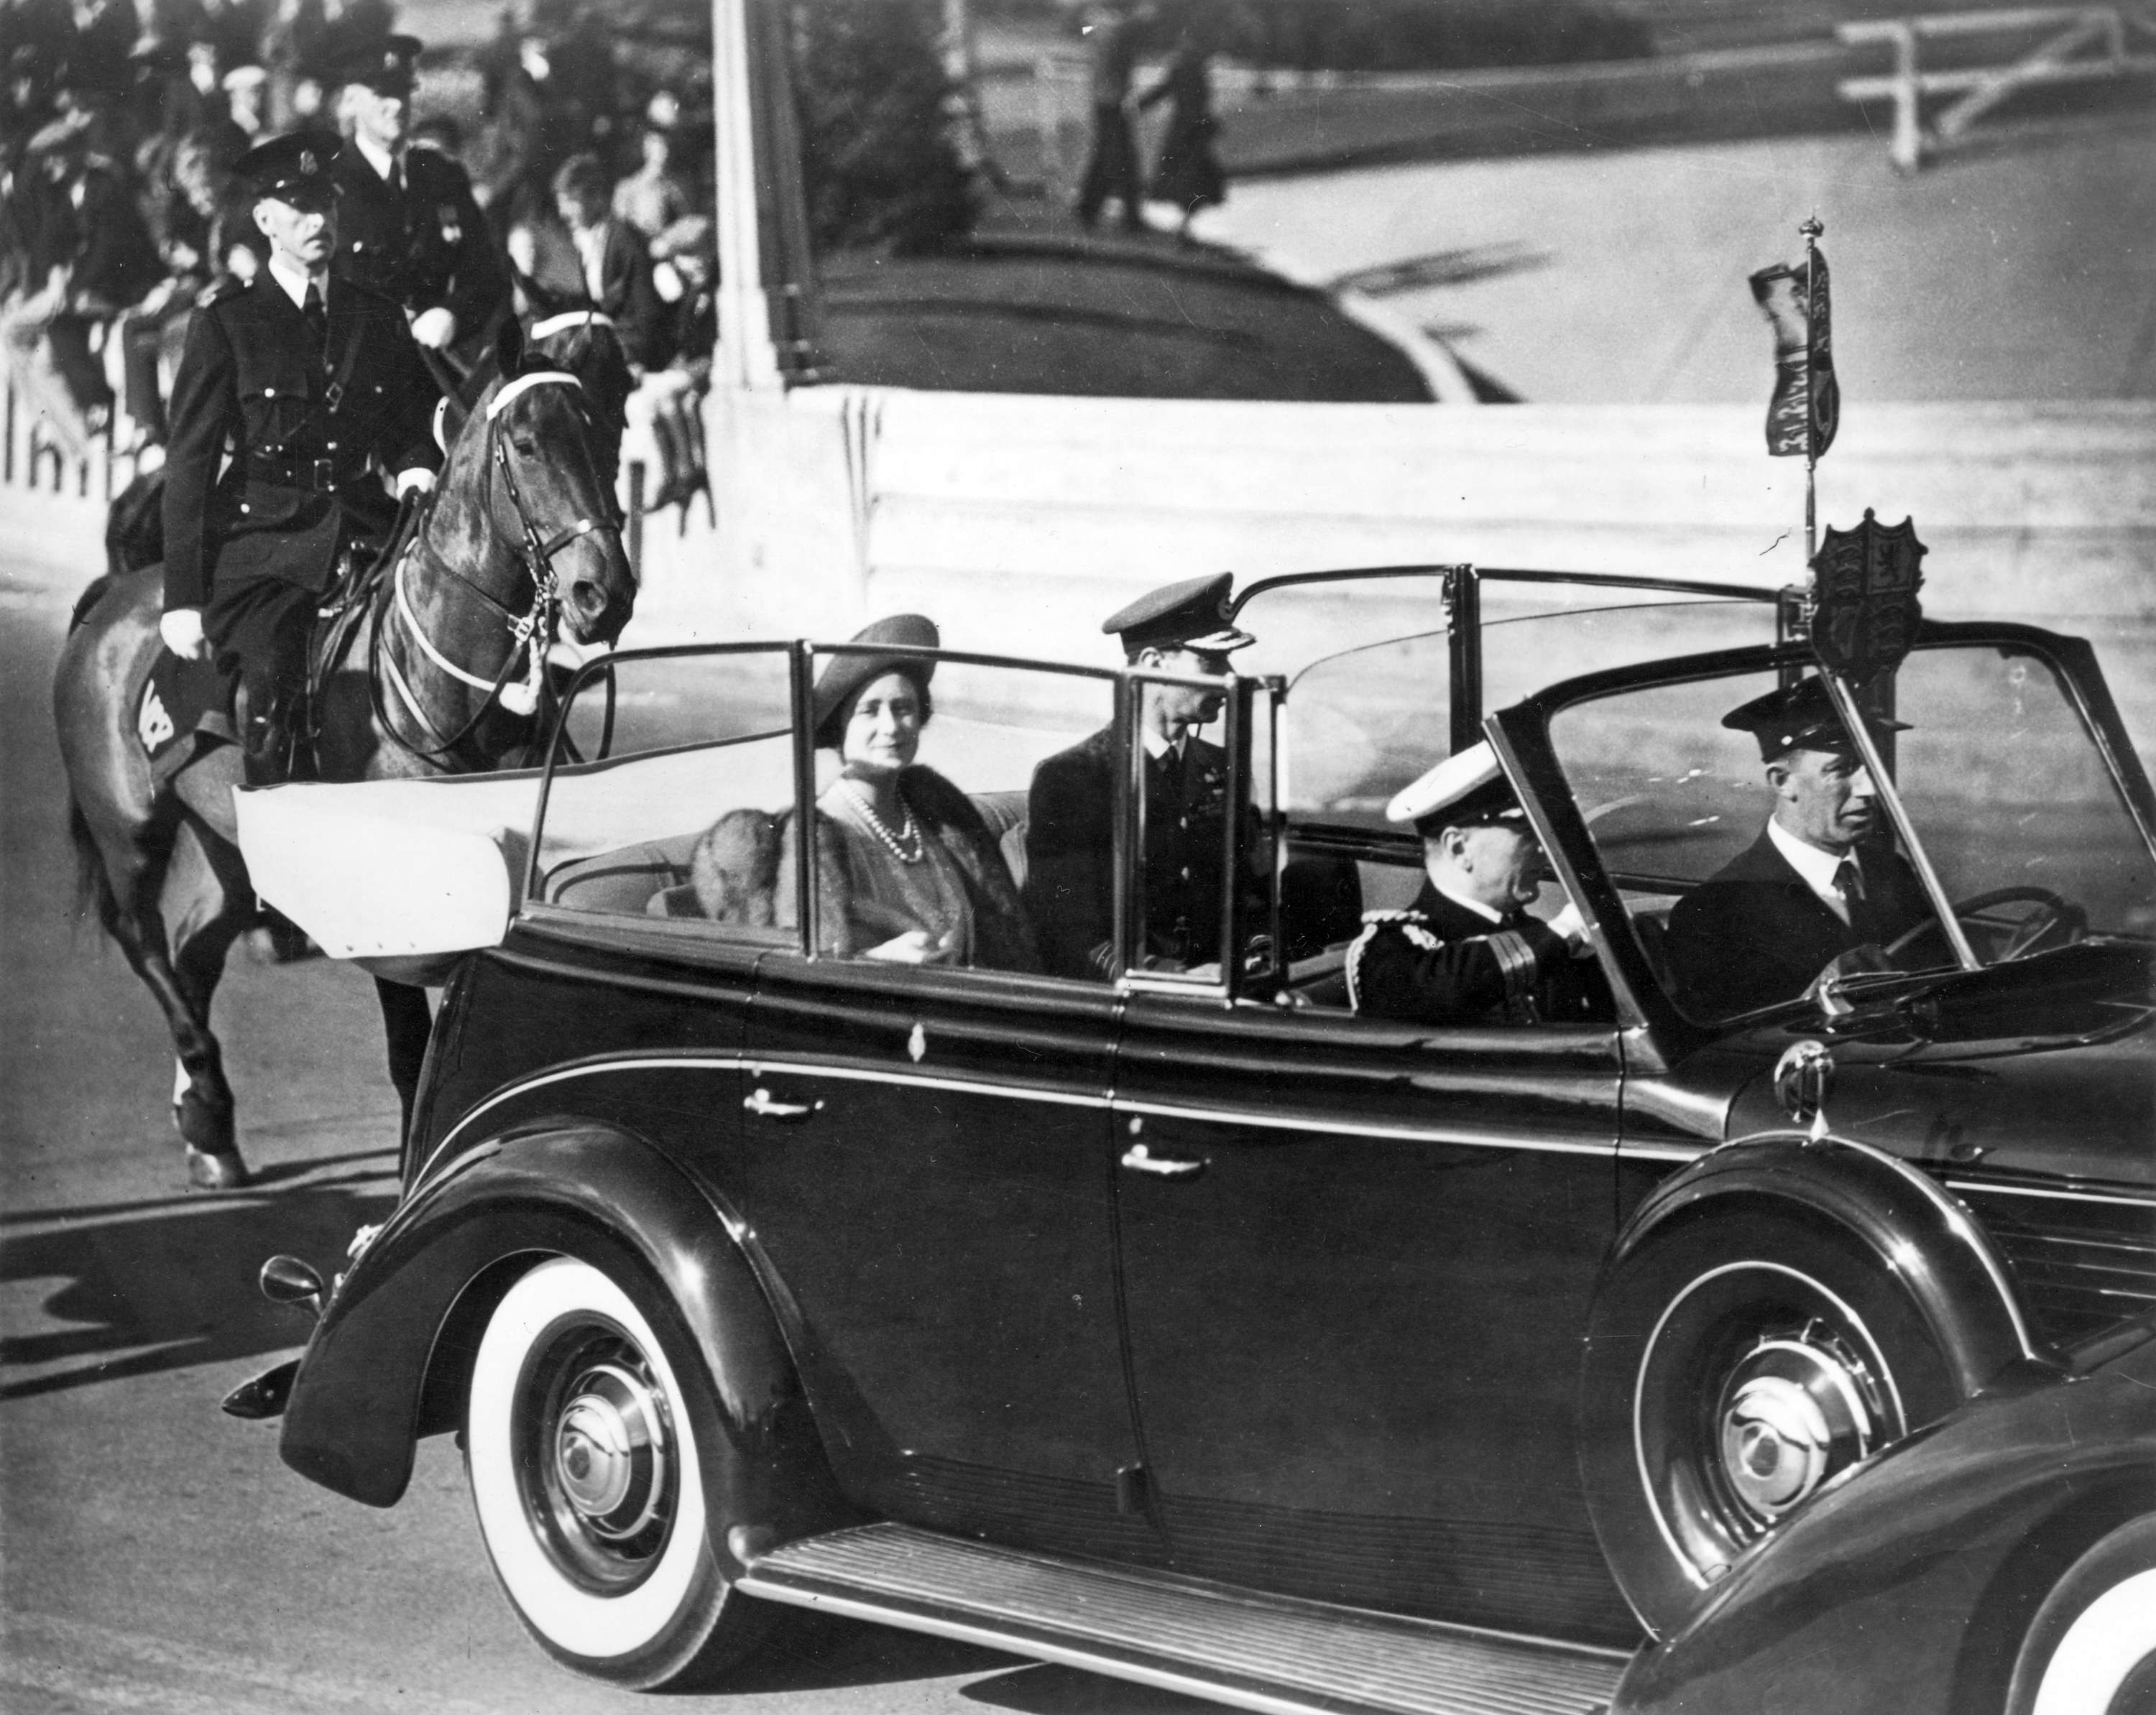 King George VI and Queen Elizabeth in a car while visiting Vancouver in 1939 (Public domain)